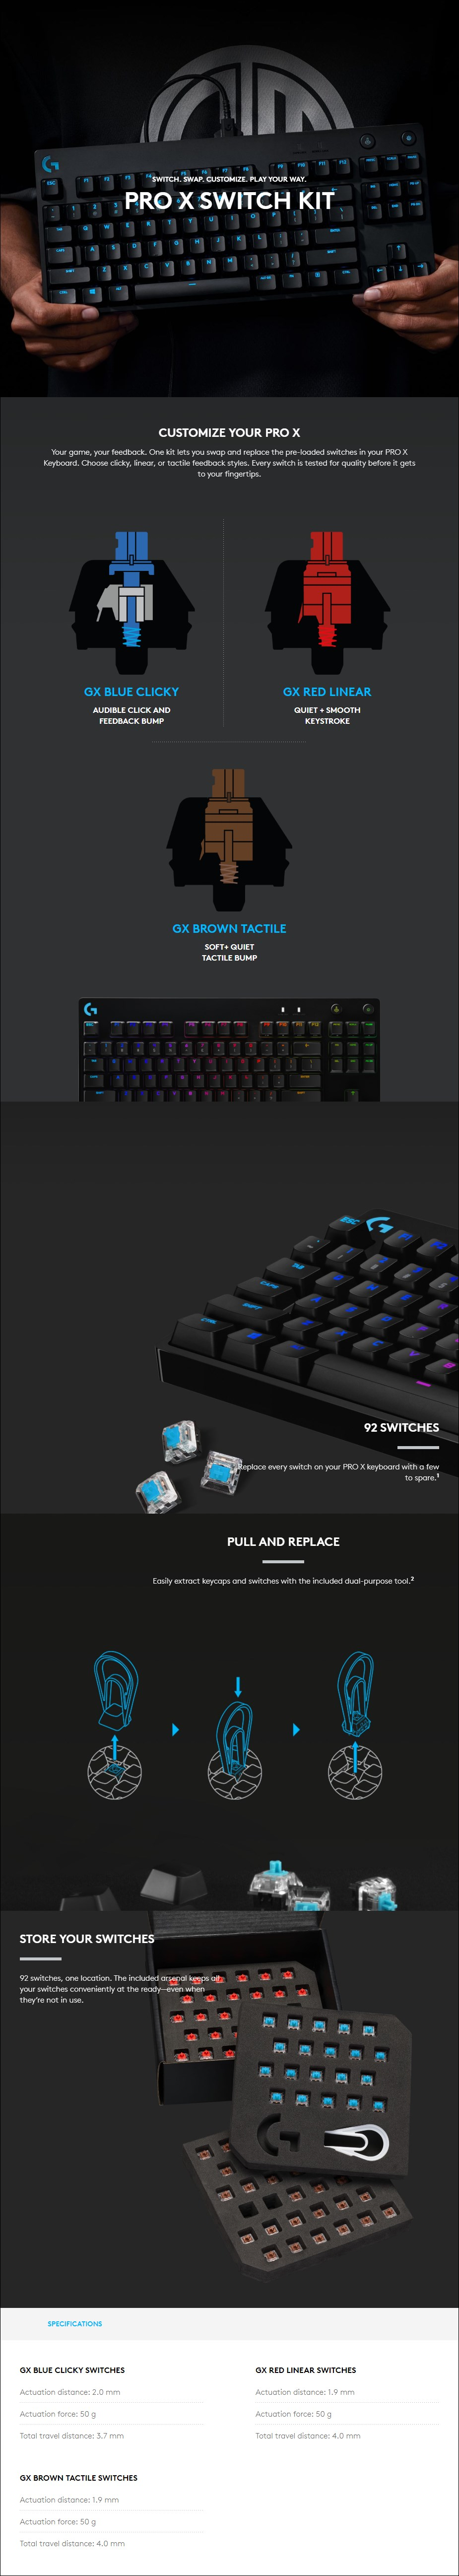 Logitech G Pro X 92-Key Mechanical Switch Kit - Linear - Overview 1